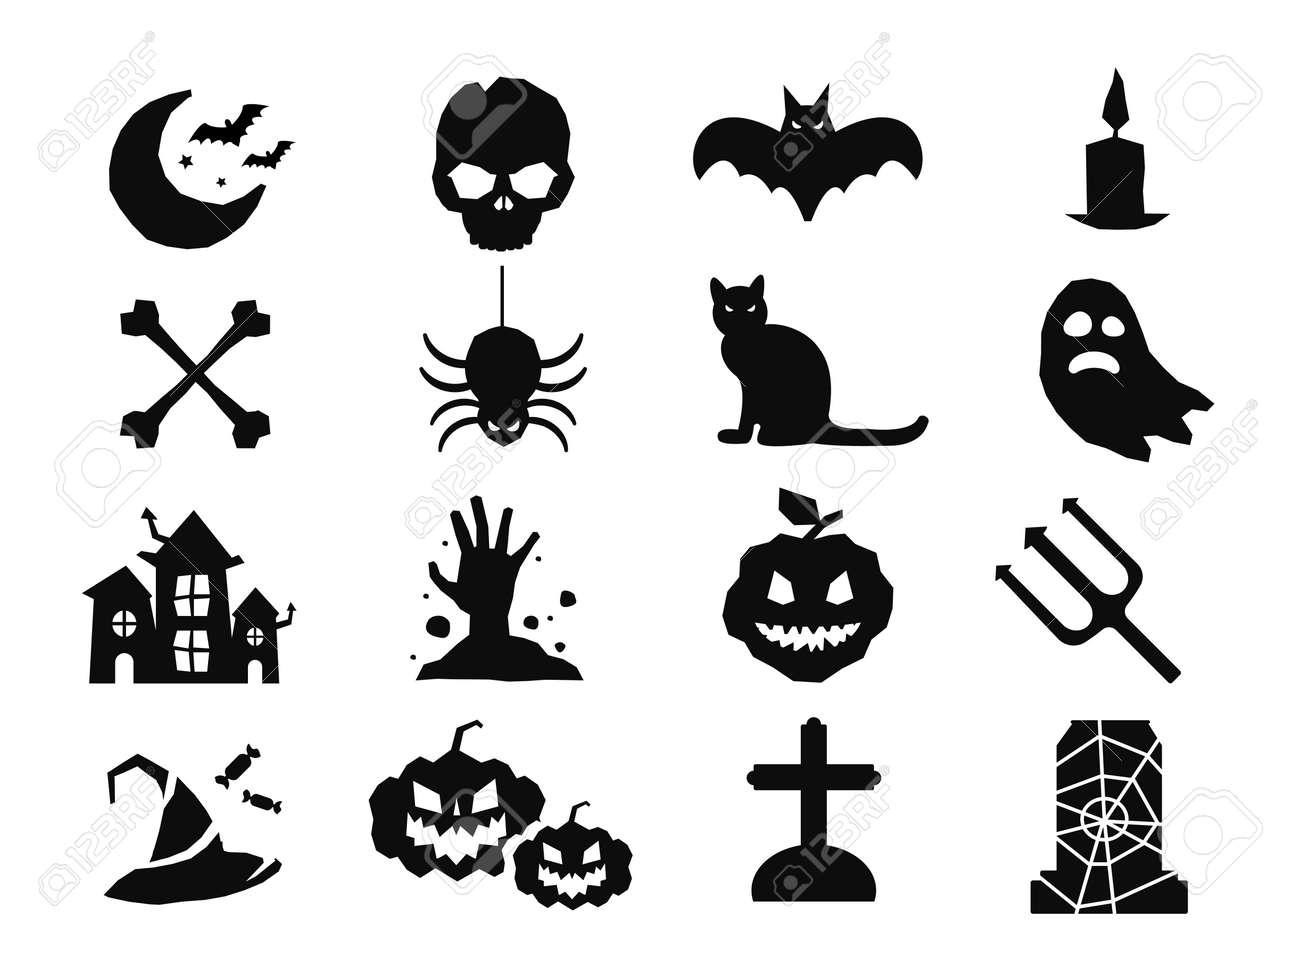 Halloween Vector Black And White.Halloween Vector Icons Set Pumpkin Head Witch Broom Candy